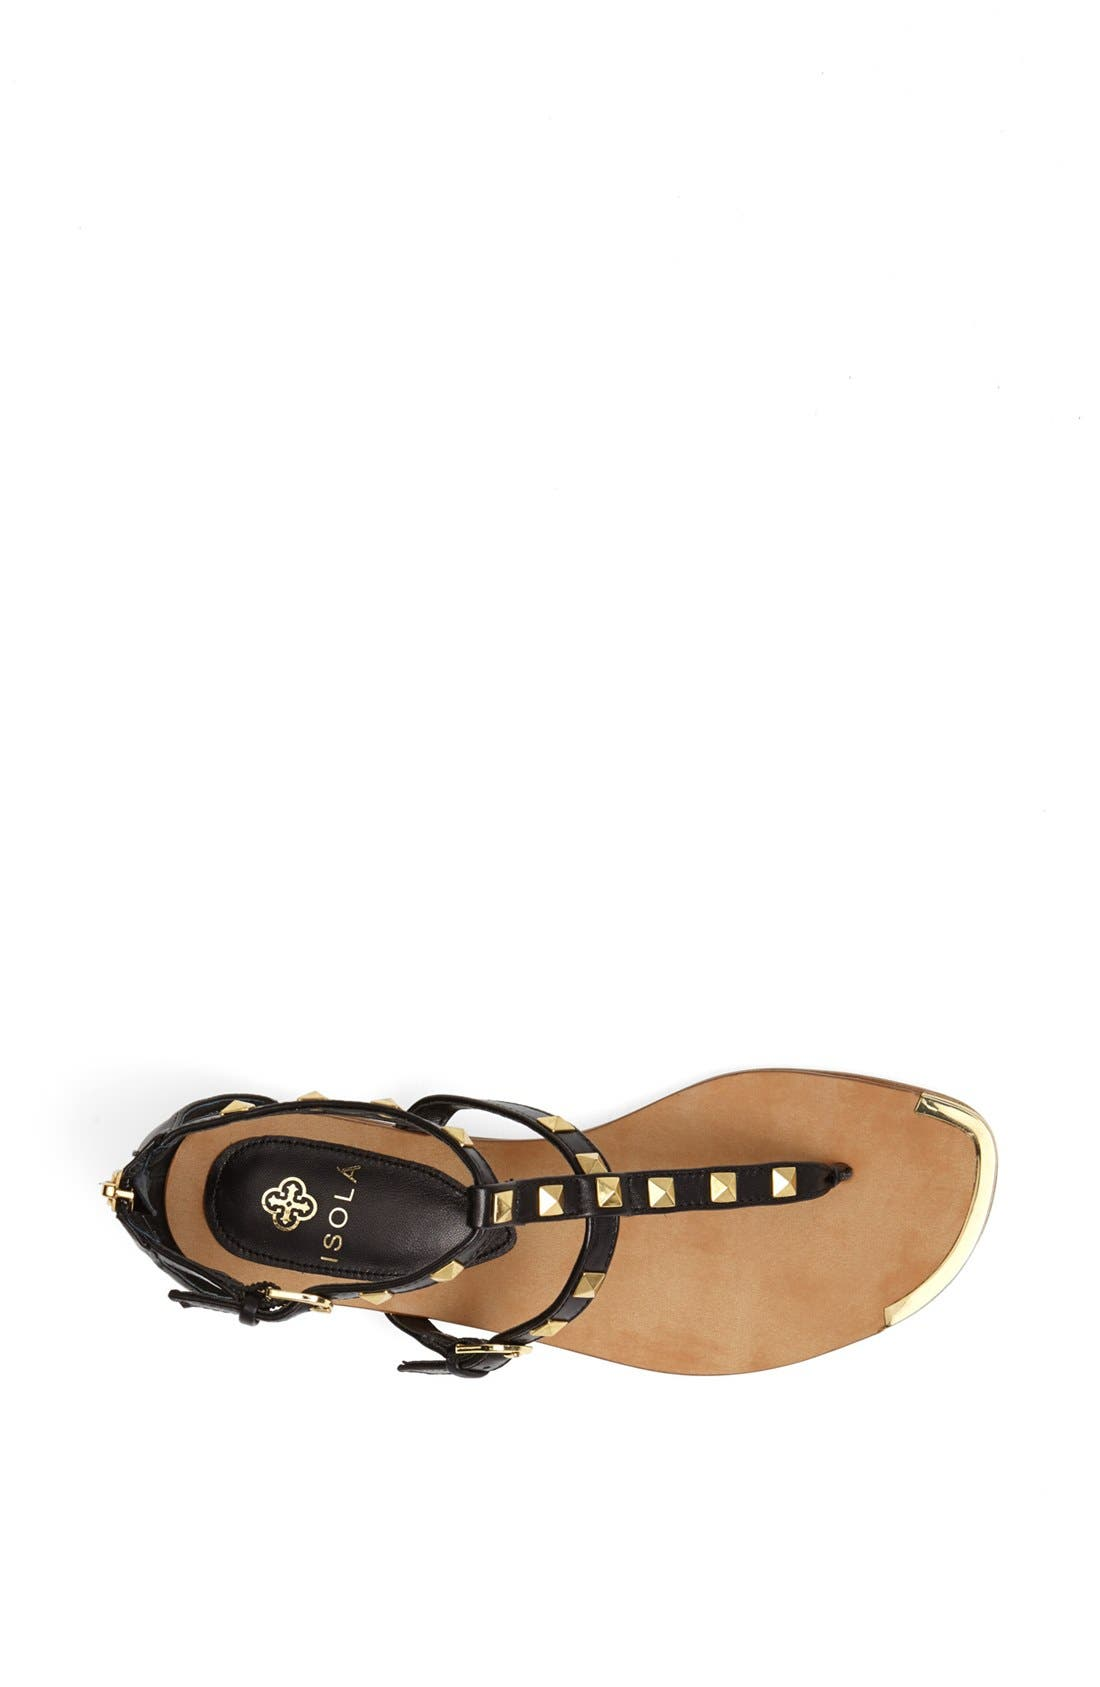 'Adie' Studded Leather Thong Sandal,                             Alternate thumbnail 4, color,                             001